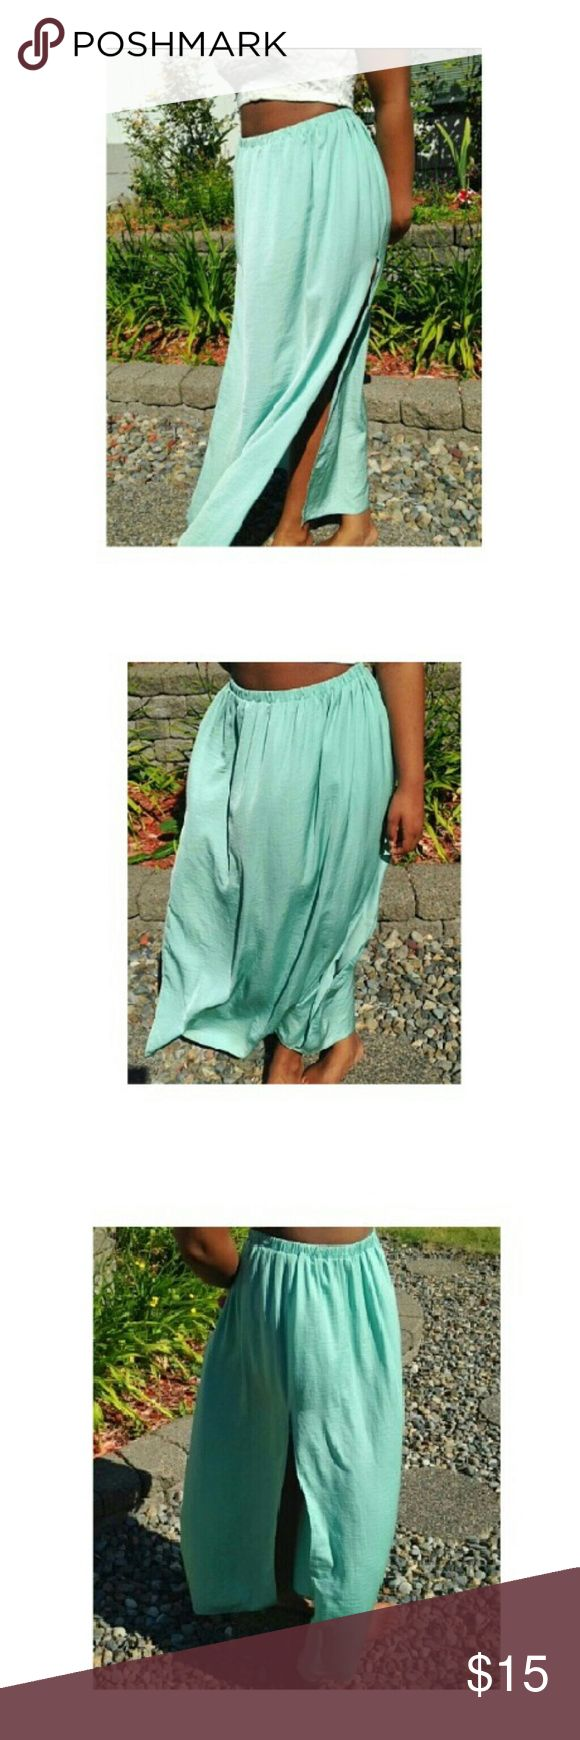 Zara Trafaluc mint green skirt Medium mint green Zara skirt. This skirt is long, it stops about 2 inches from my ankles, and I'm 5'5. It is in great condition, no rips, no tears.     (I do accept trades) Zara Skirts